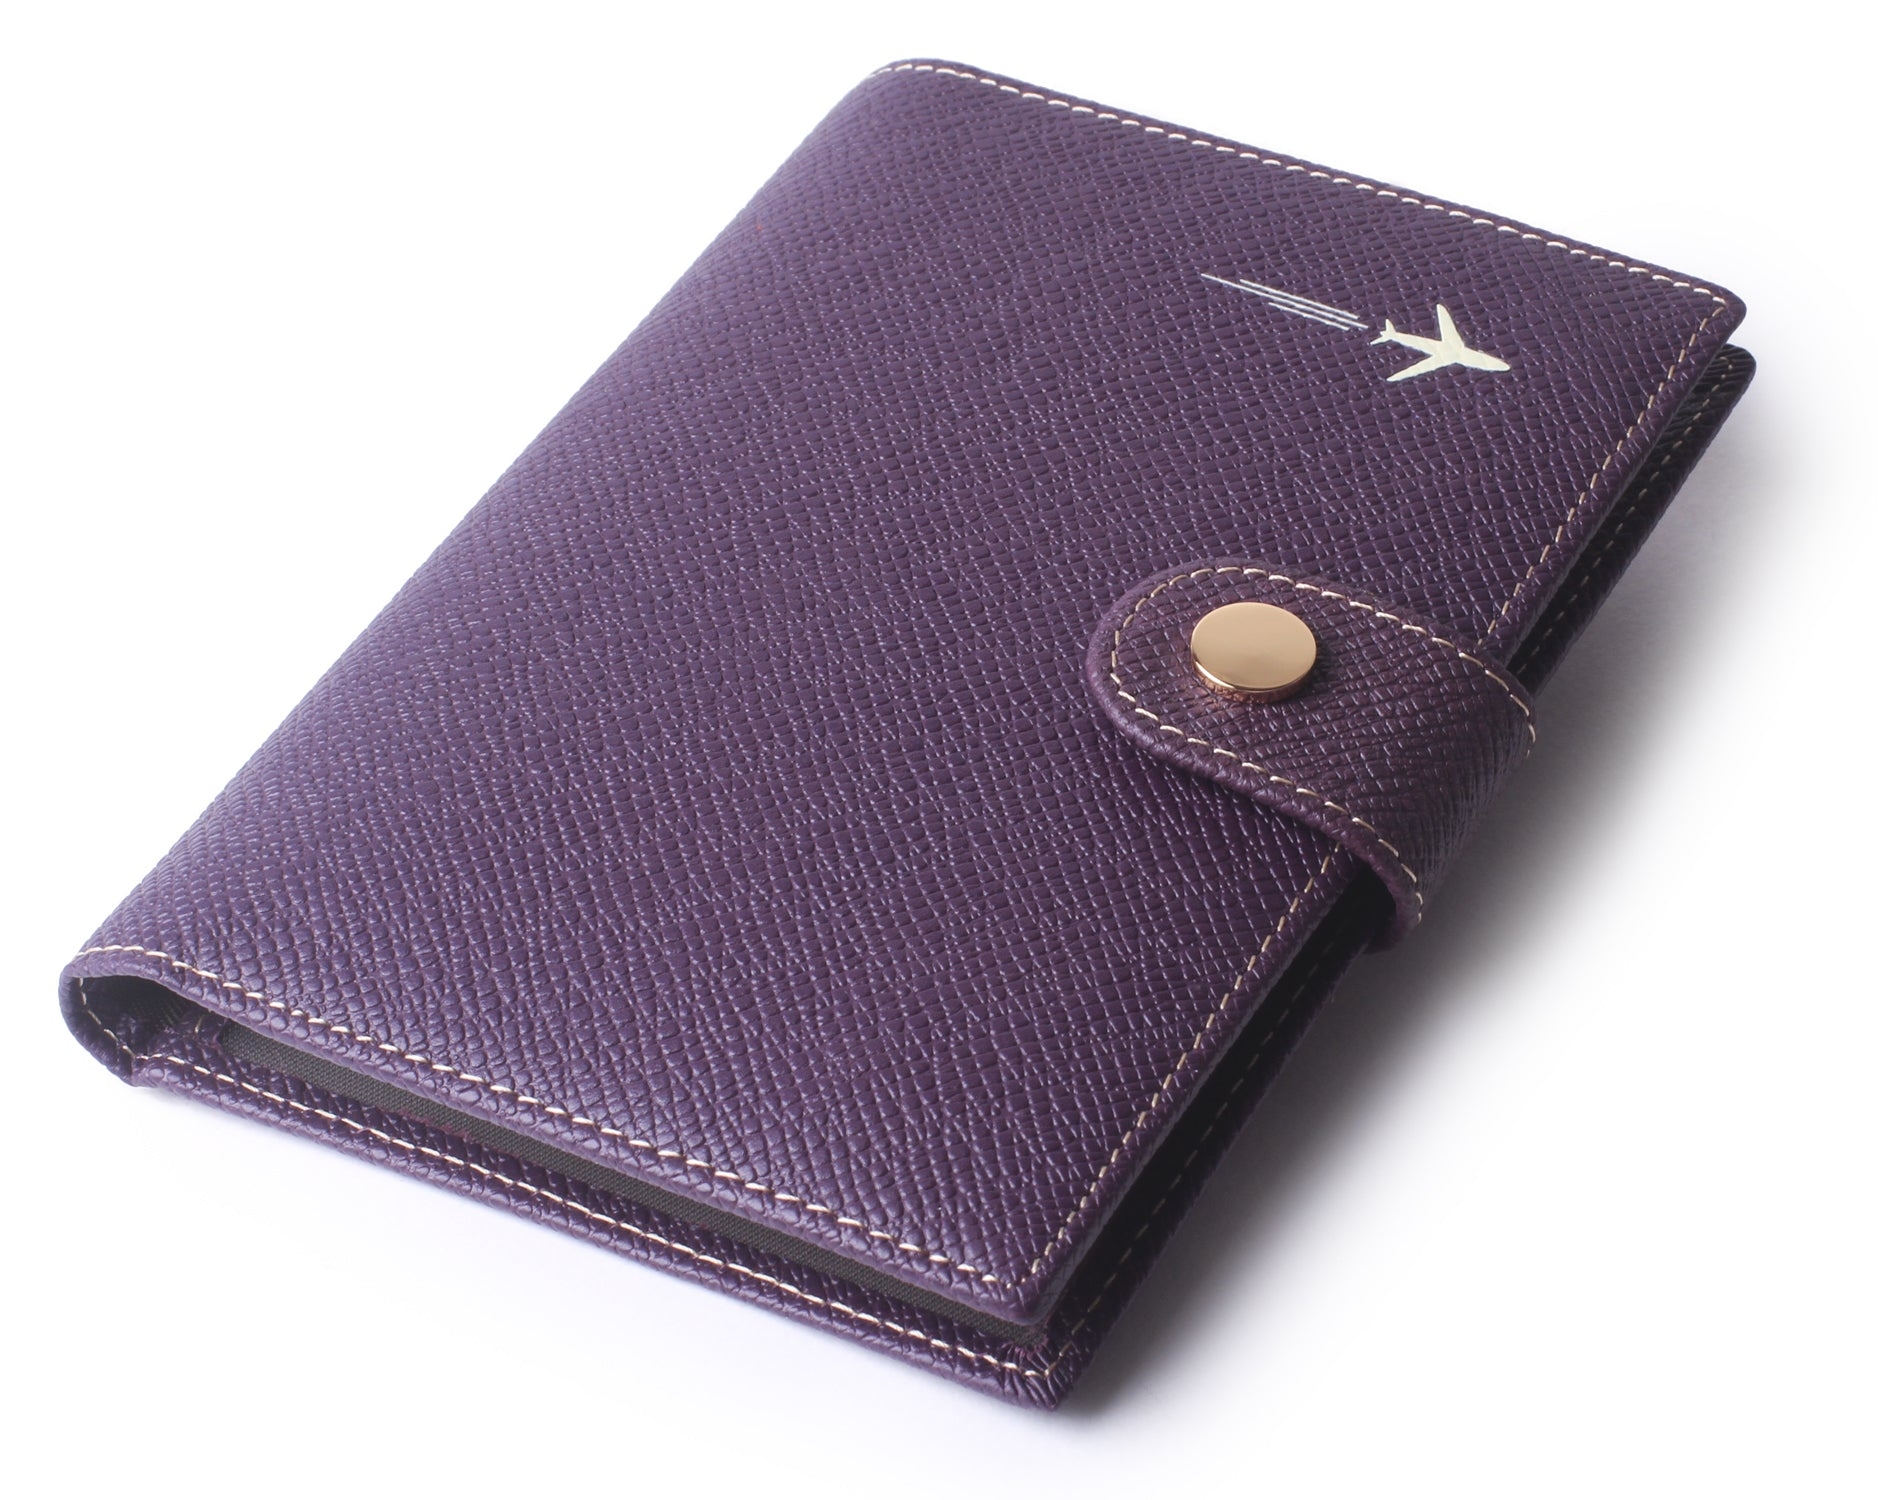 Leather Rfid Blocking Travel Passport Holder Cover Slim ID Card Case Wallet Purple - Borgasets